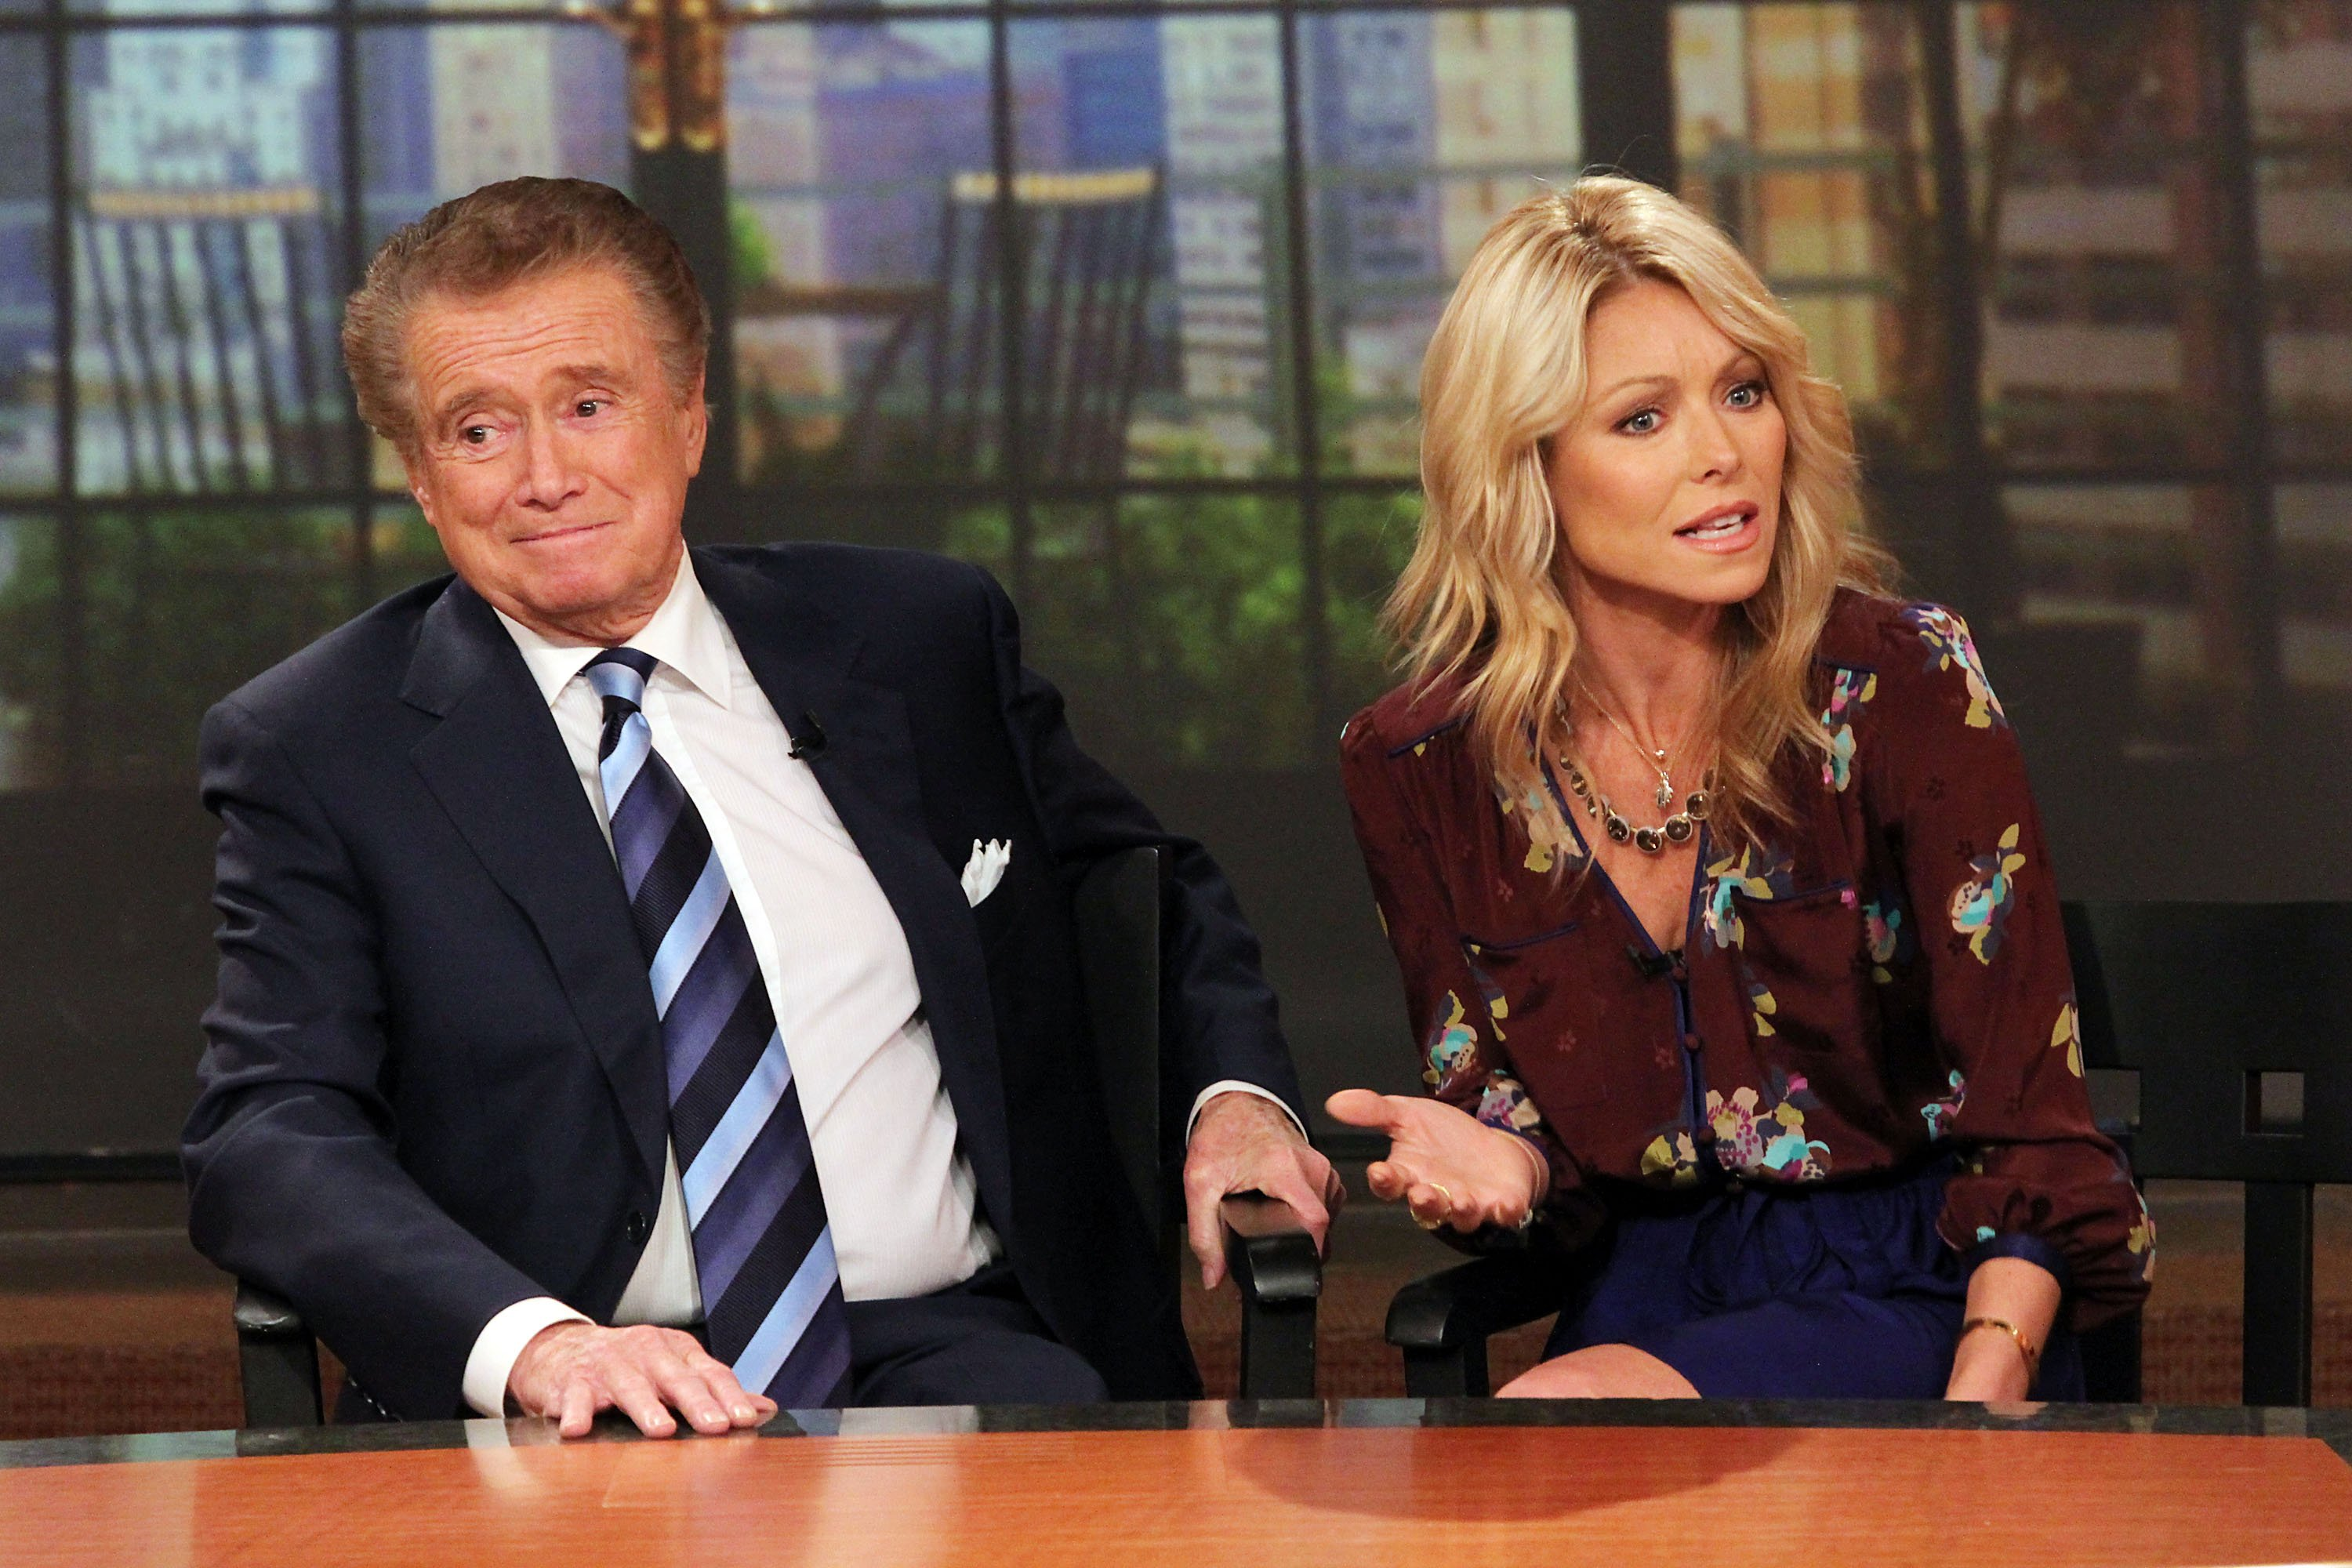 """Regis Philbin and Kelly Ripa attend a press conference on Regis's departure from """"LIVE! with Regis and Kelly"""" on November 17, 2011, in New York City. 